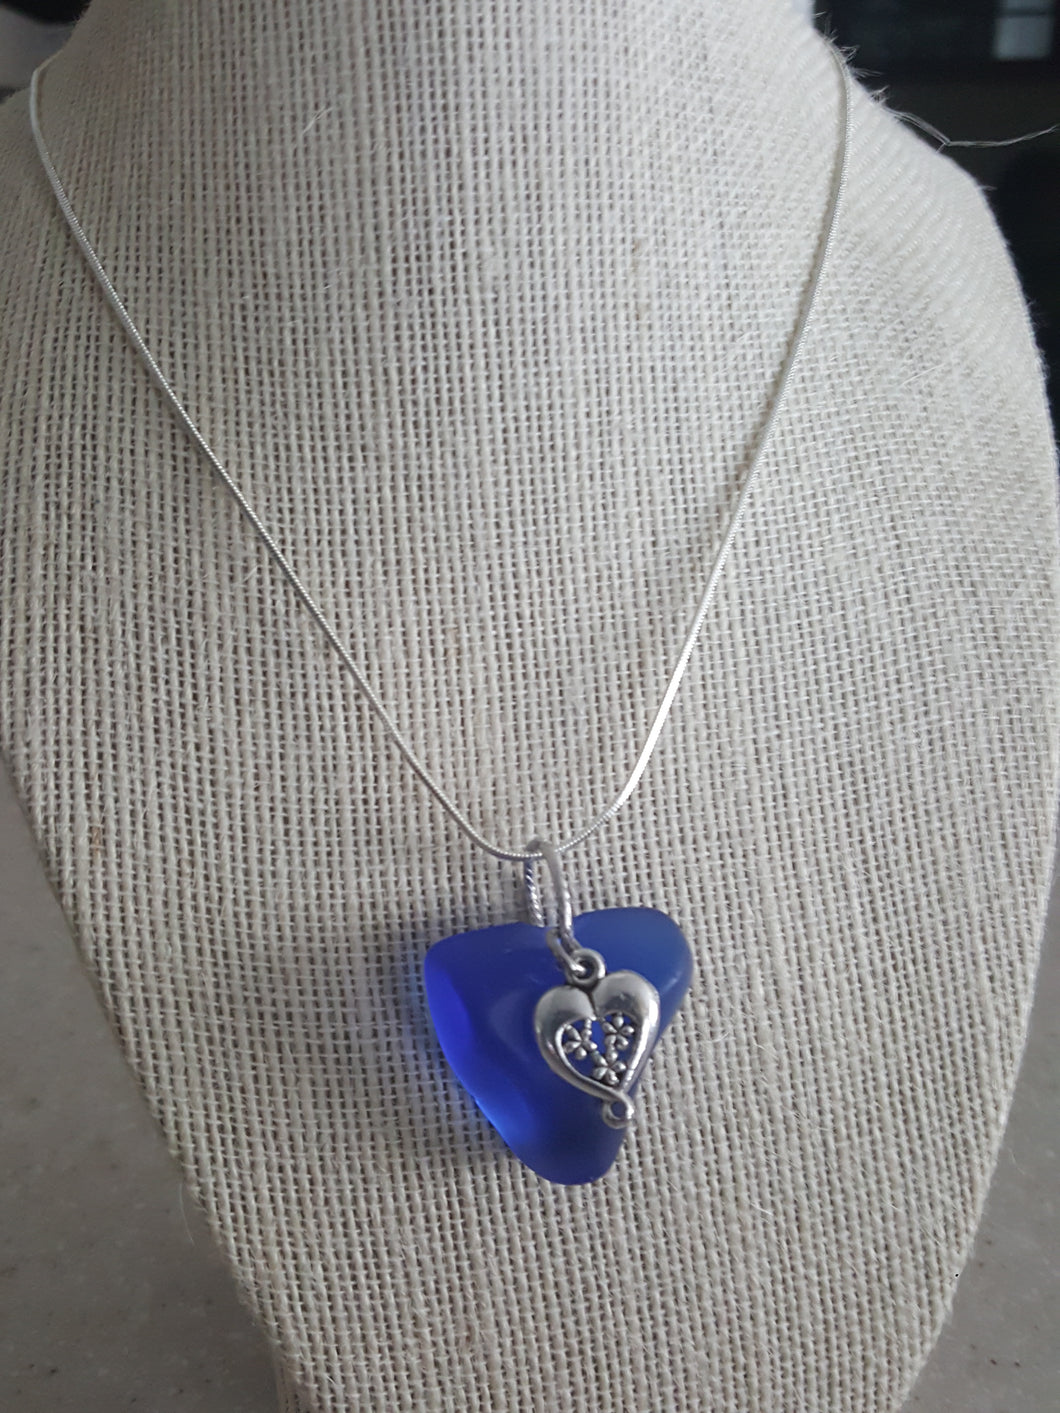 Custom~Cobalt Blue Authentic Sea Glass Pendant With Ornate Heart Charm